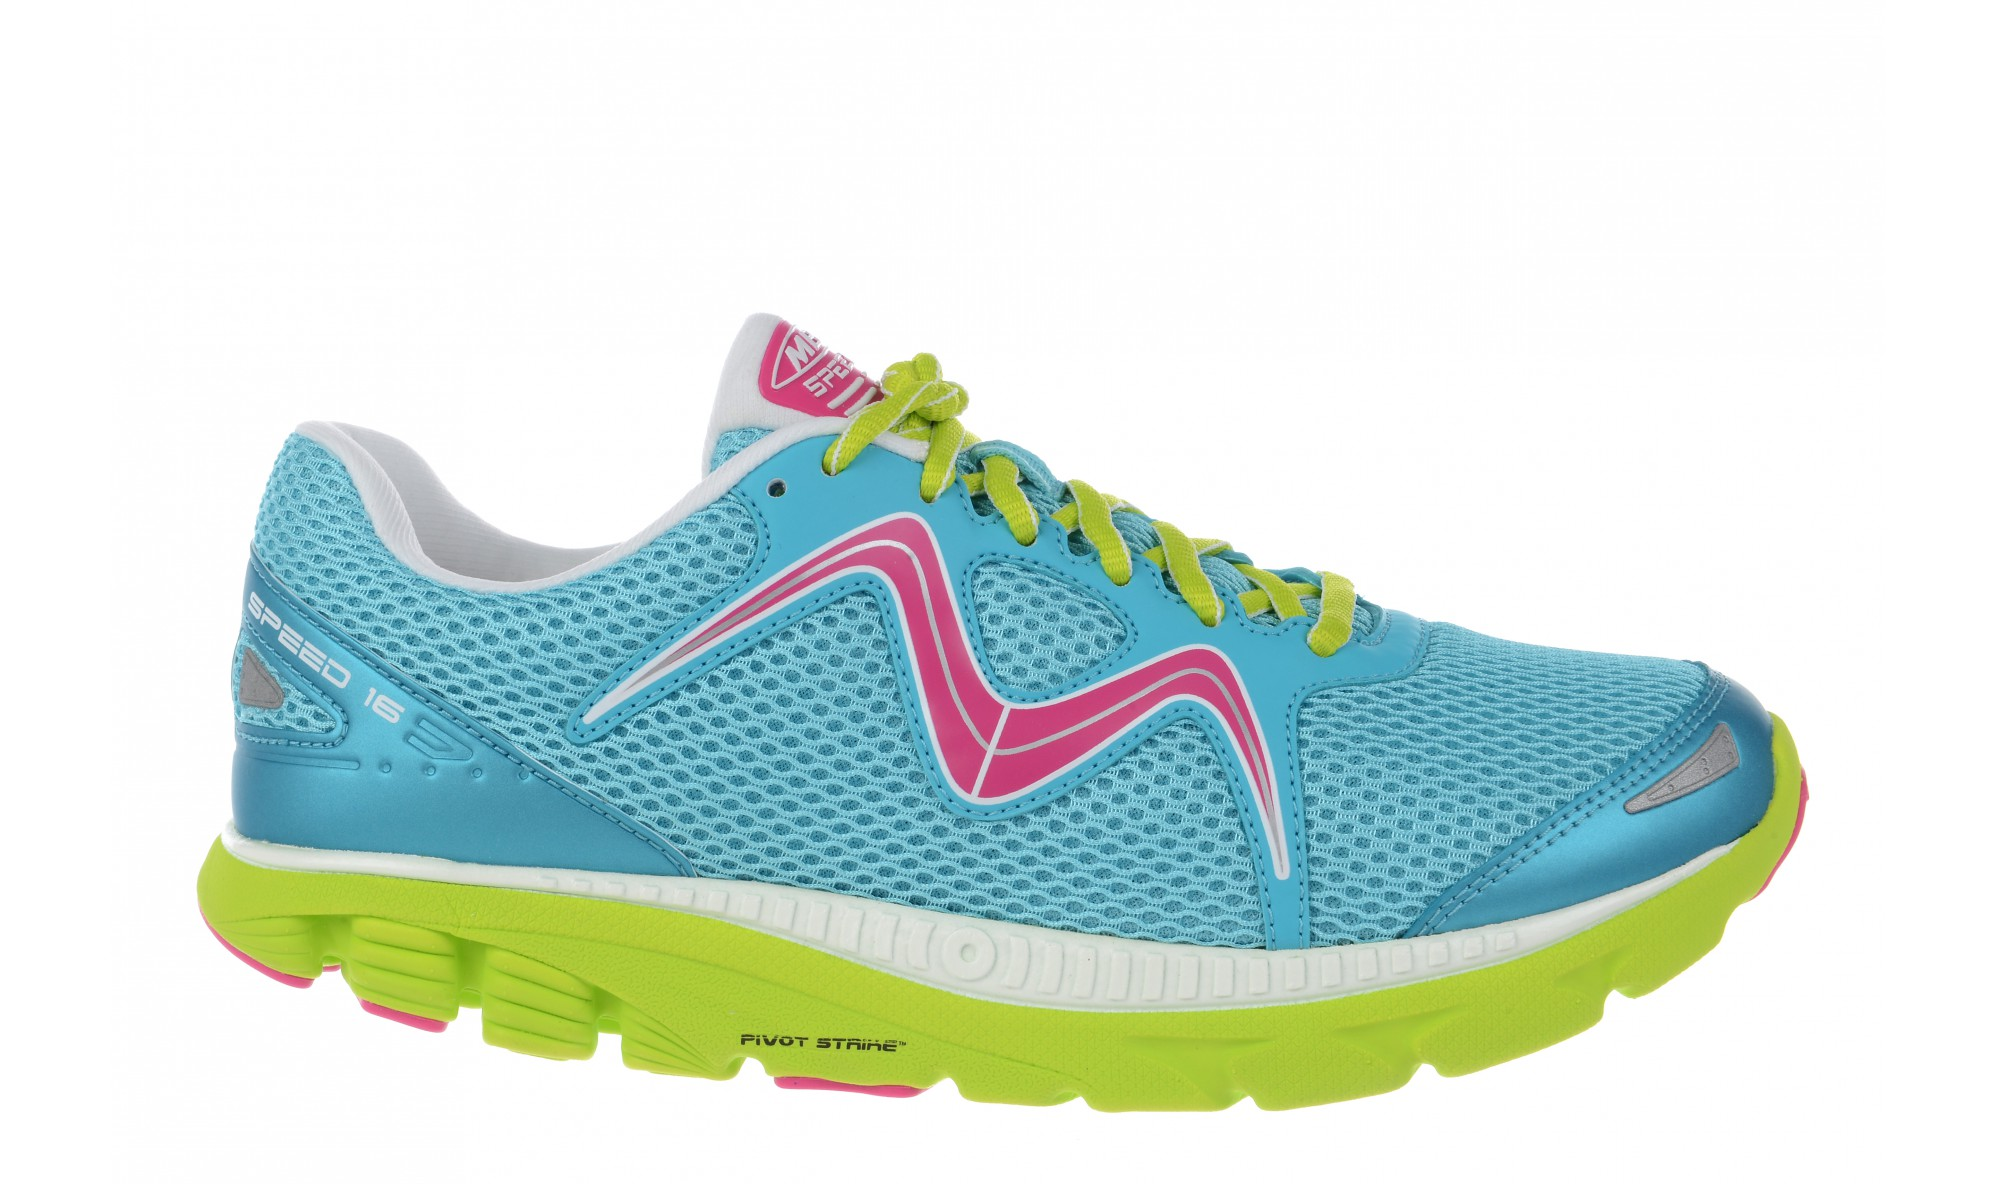 MBT Women's Speed 16 Lace Up Powder Blue / Lime / Fuschia